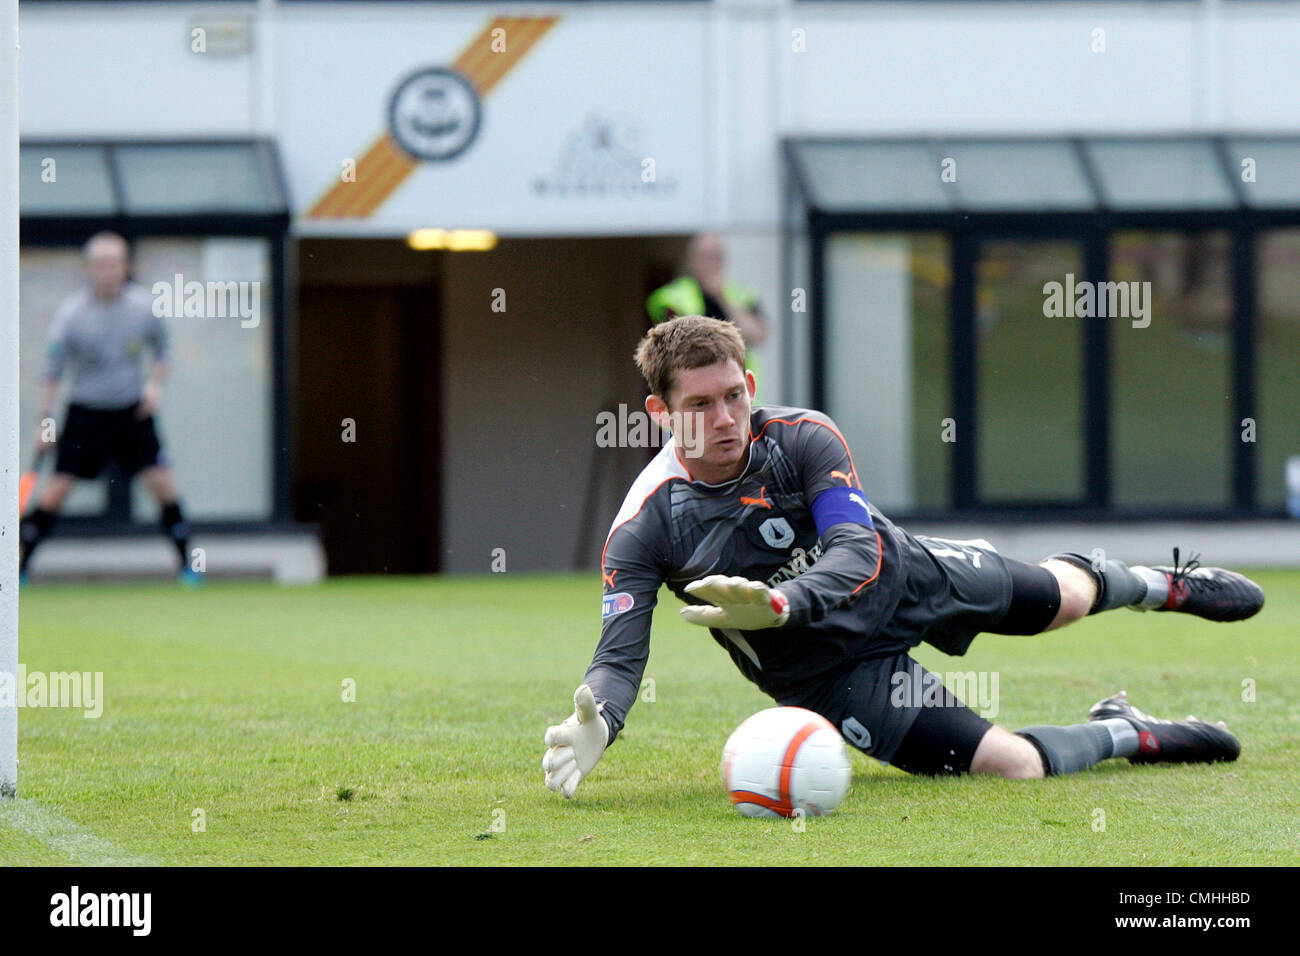 11th Aug 2012. 11.08.2012 Glasgow, Scotland. 1 Michael McGovern in action during the Scottish Football League Division - Stock Image